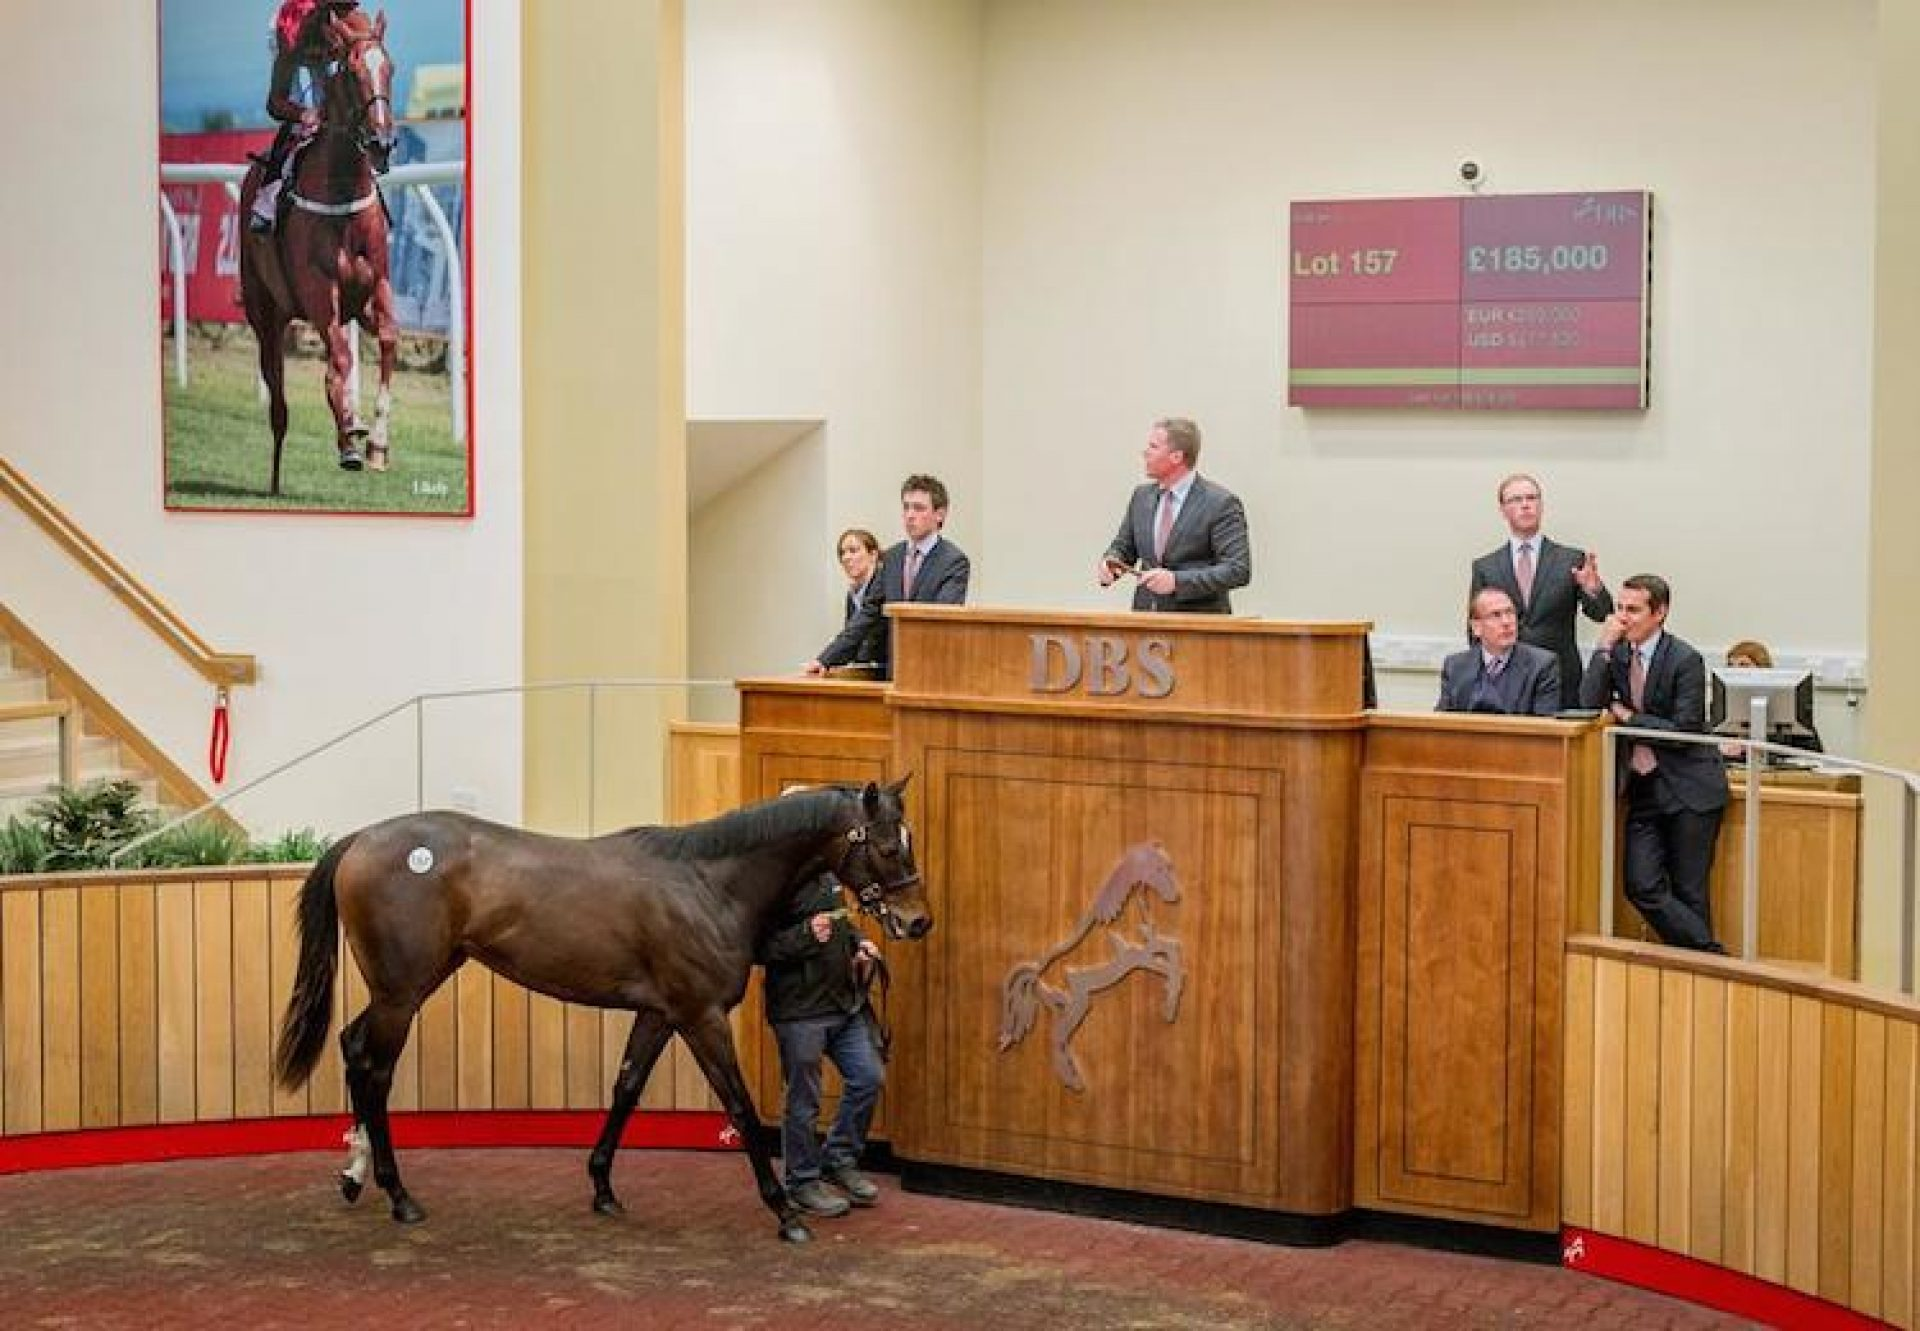 Footstepsinthesand ex Notting Hill colt selling as £185,000 at the Doncaster Breeze Up Sales